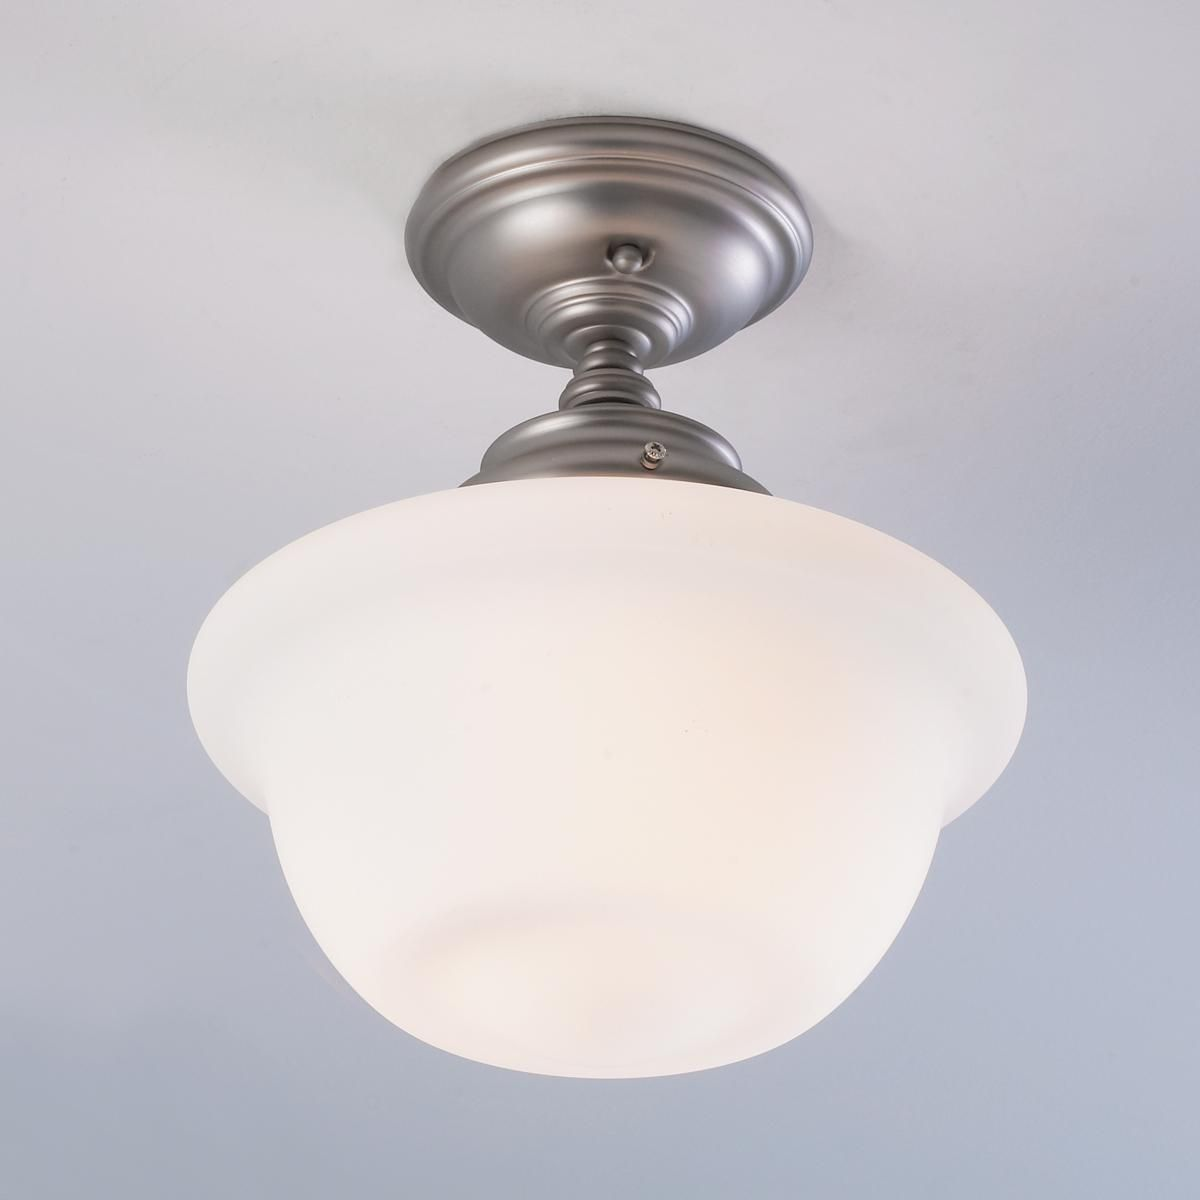 Timeless schoolhouse ceiling light ceiling lights and lofts vintage schoolhouse ceiling light classic schoolhouse lighting has remained a favorite choice for bathrooms and kitchens arubaitofo Gallery